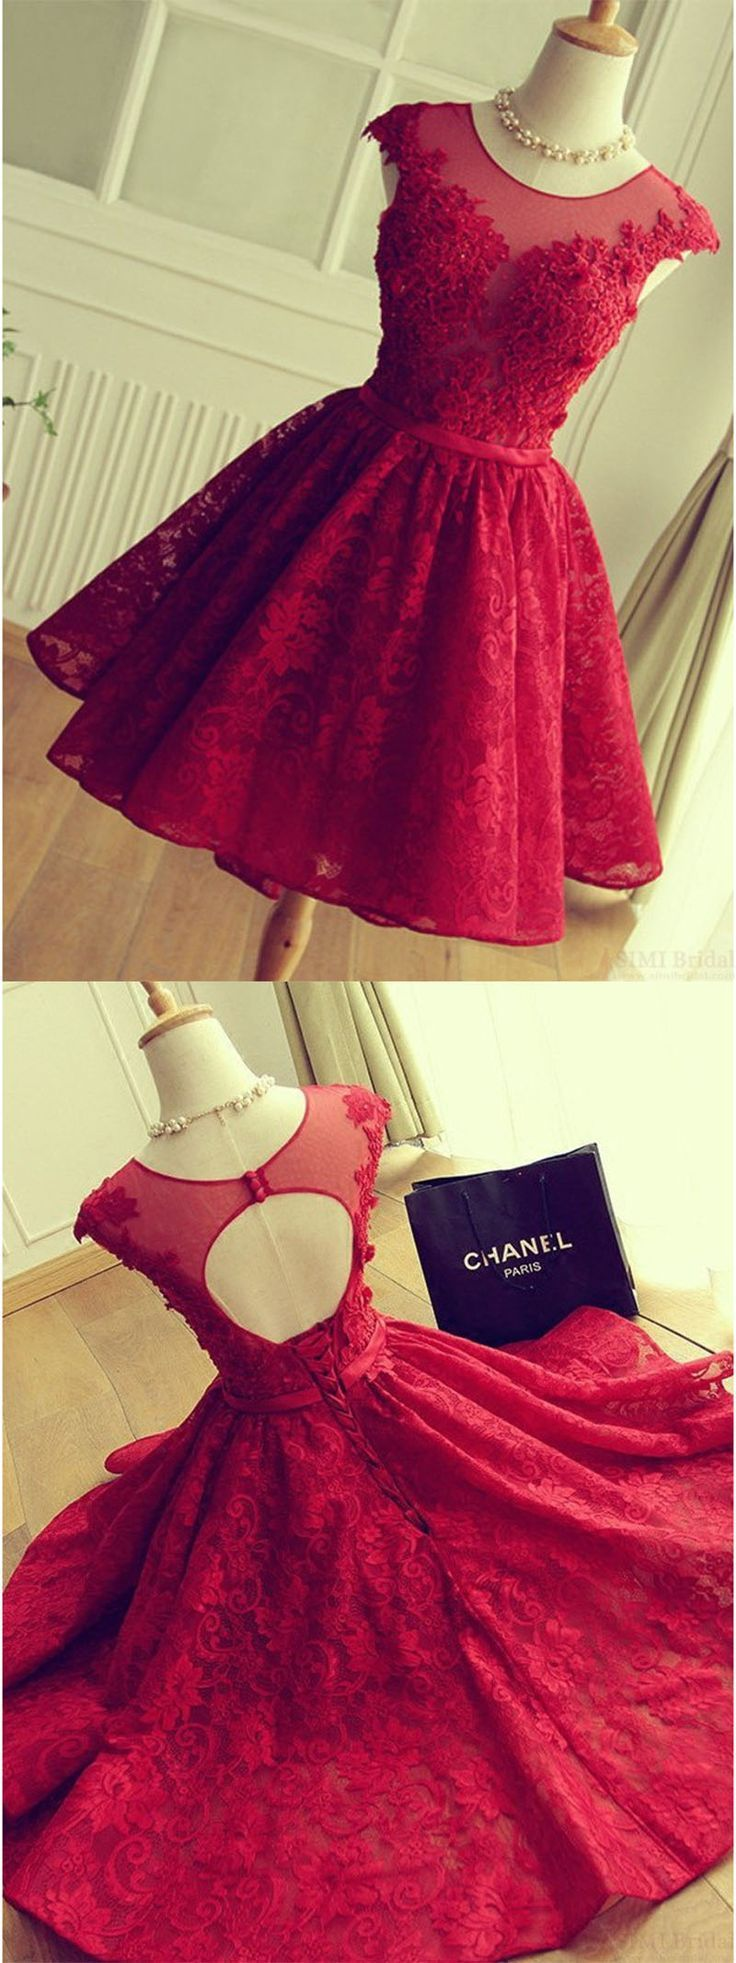 Adorable Knee-Length Red Short Lace Prom Dress Homecoming Dress Women